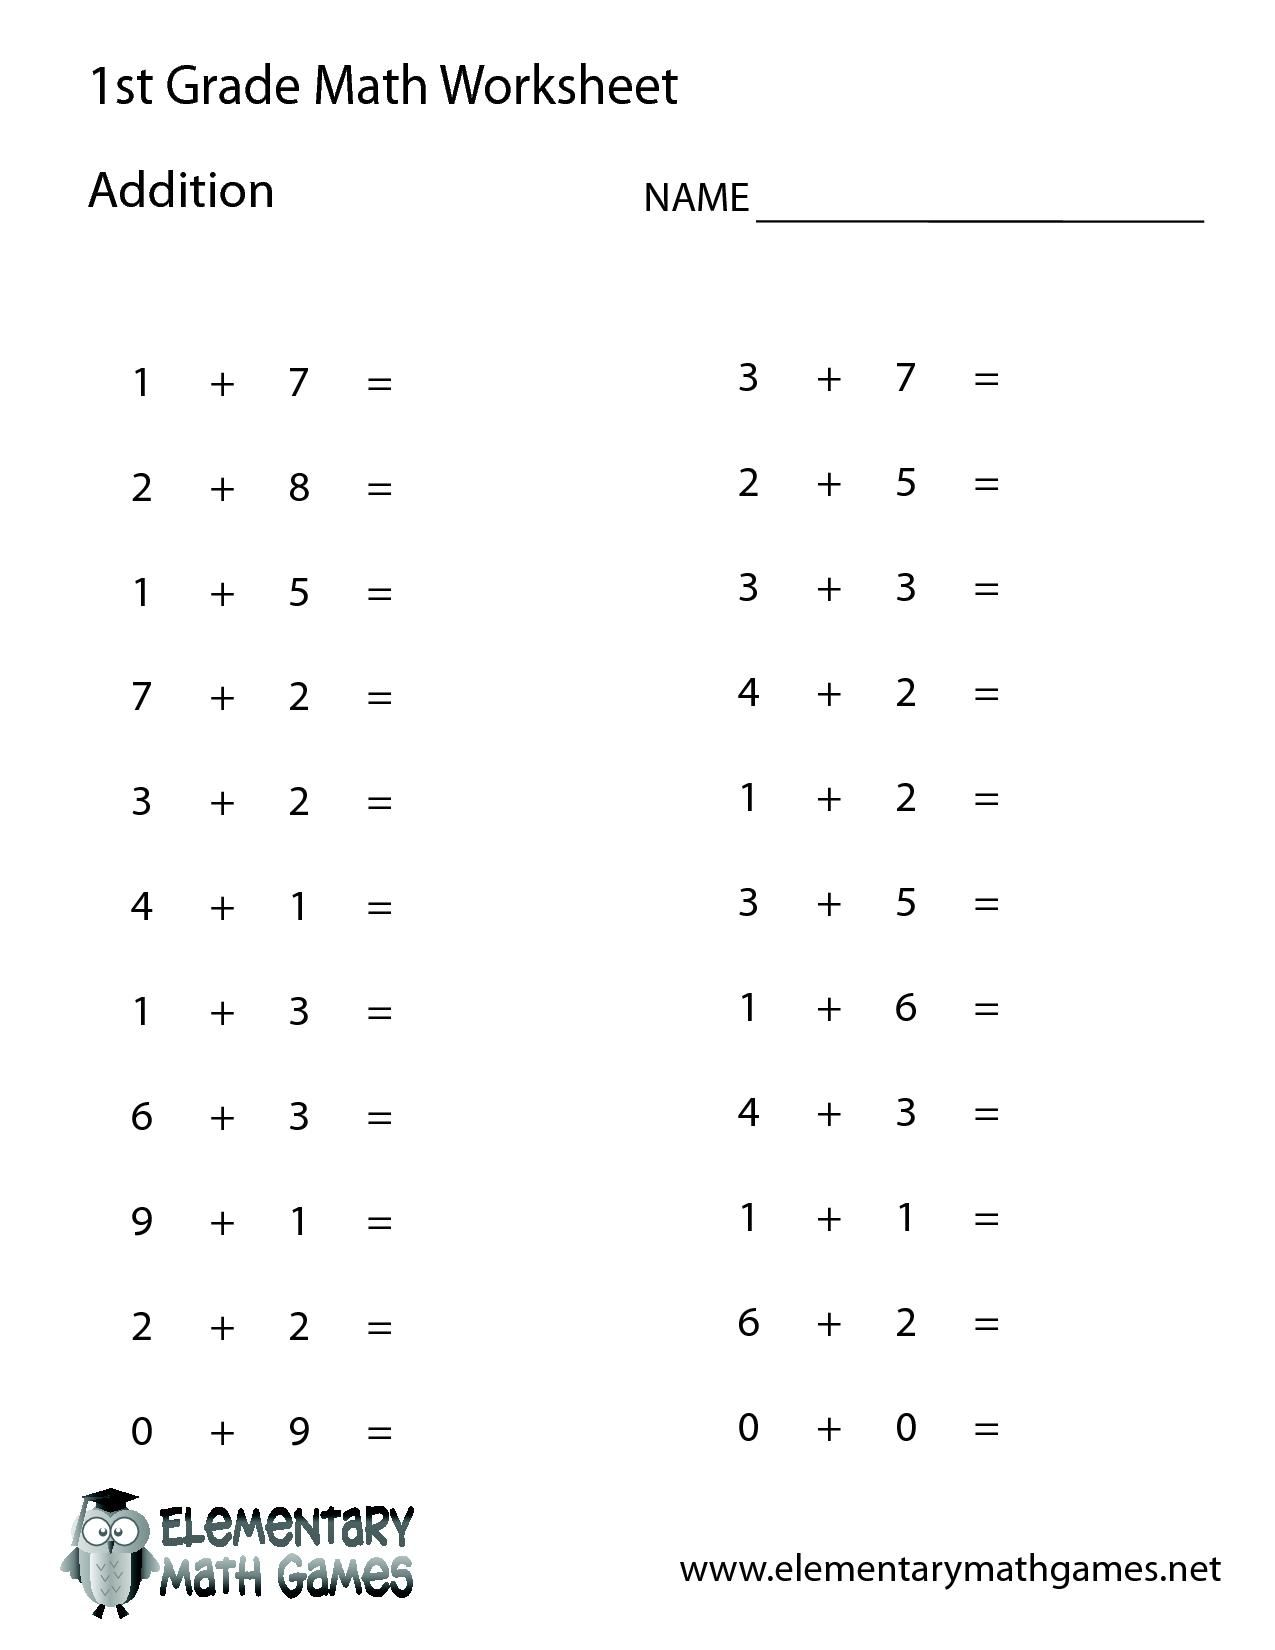 Free Printable Math Addition Worksheets For First Grade In